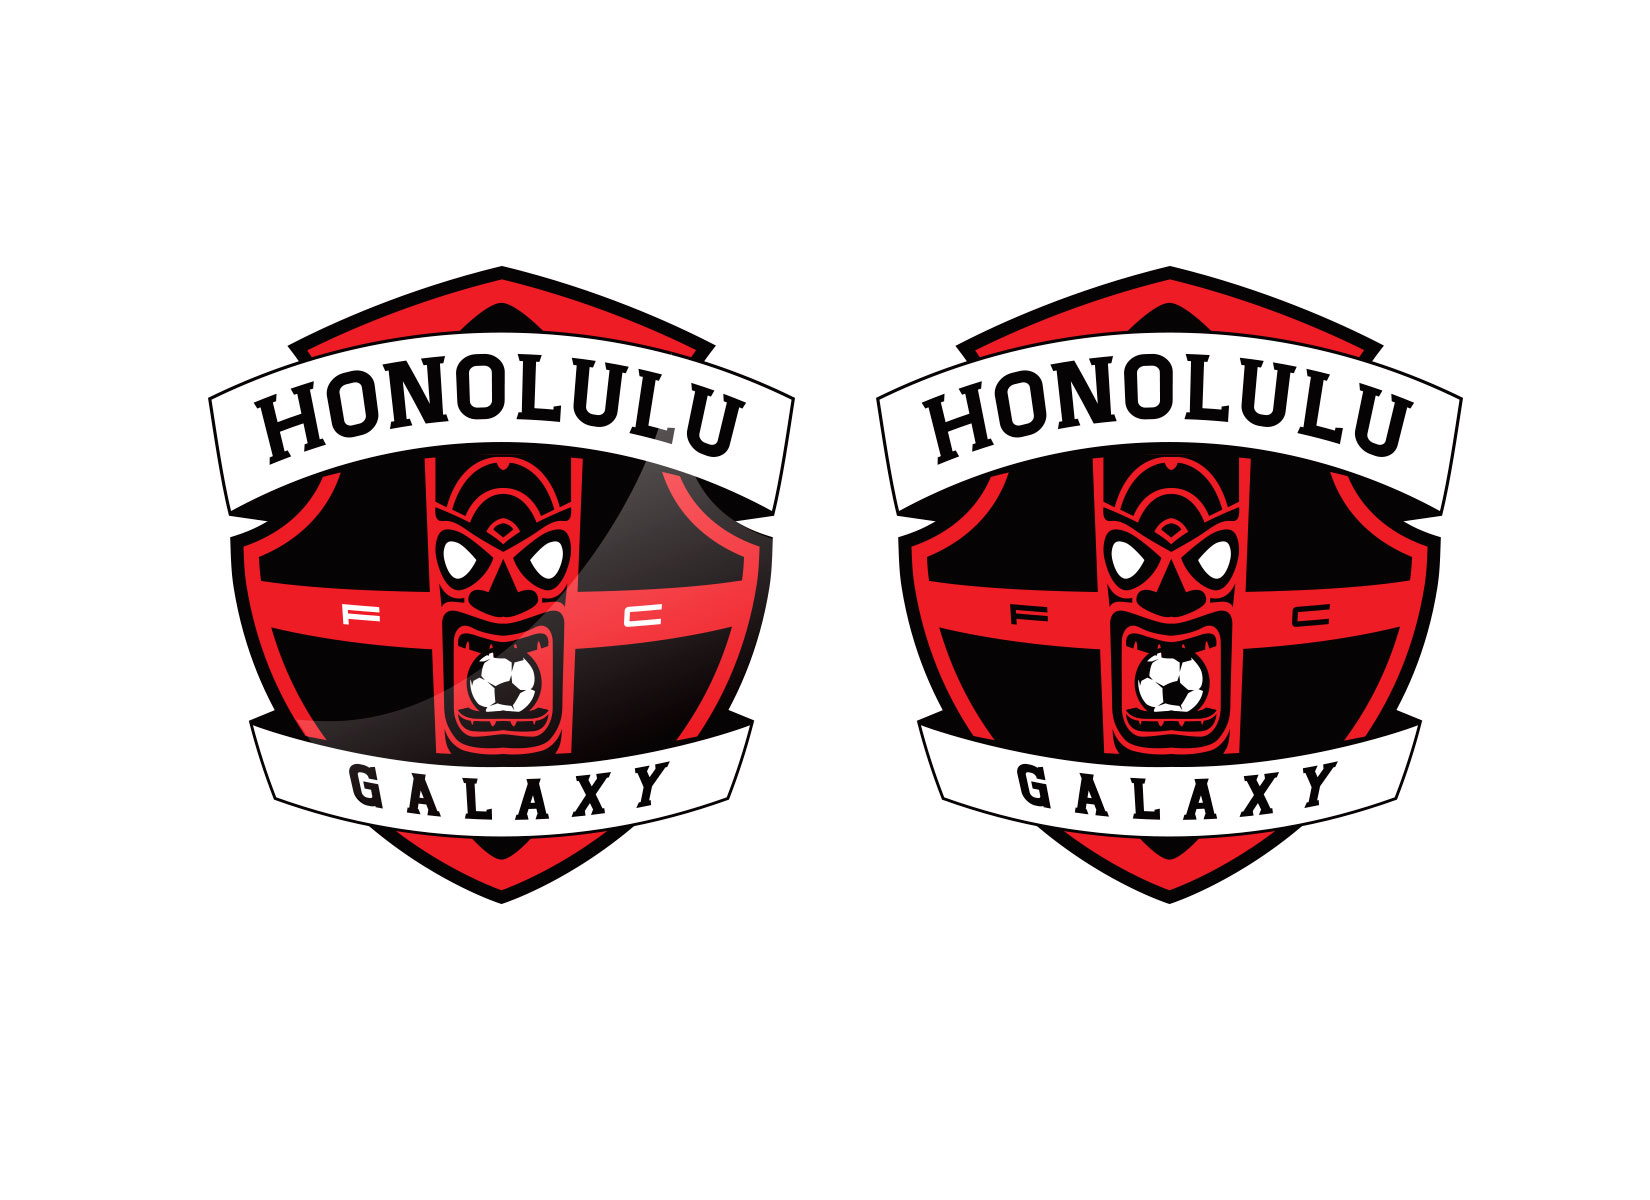 custom soccer logo design option for hawaii soccer club by jordan fretz design